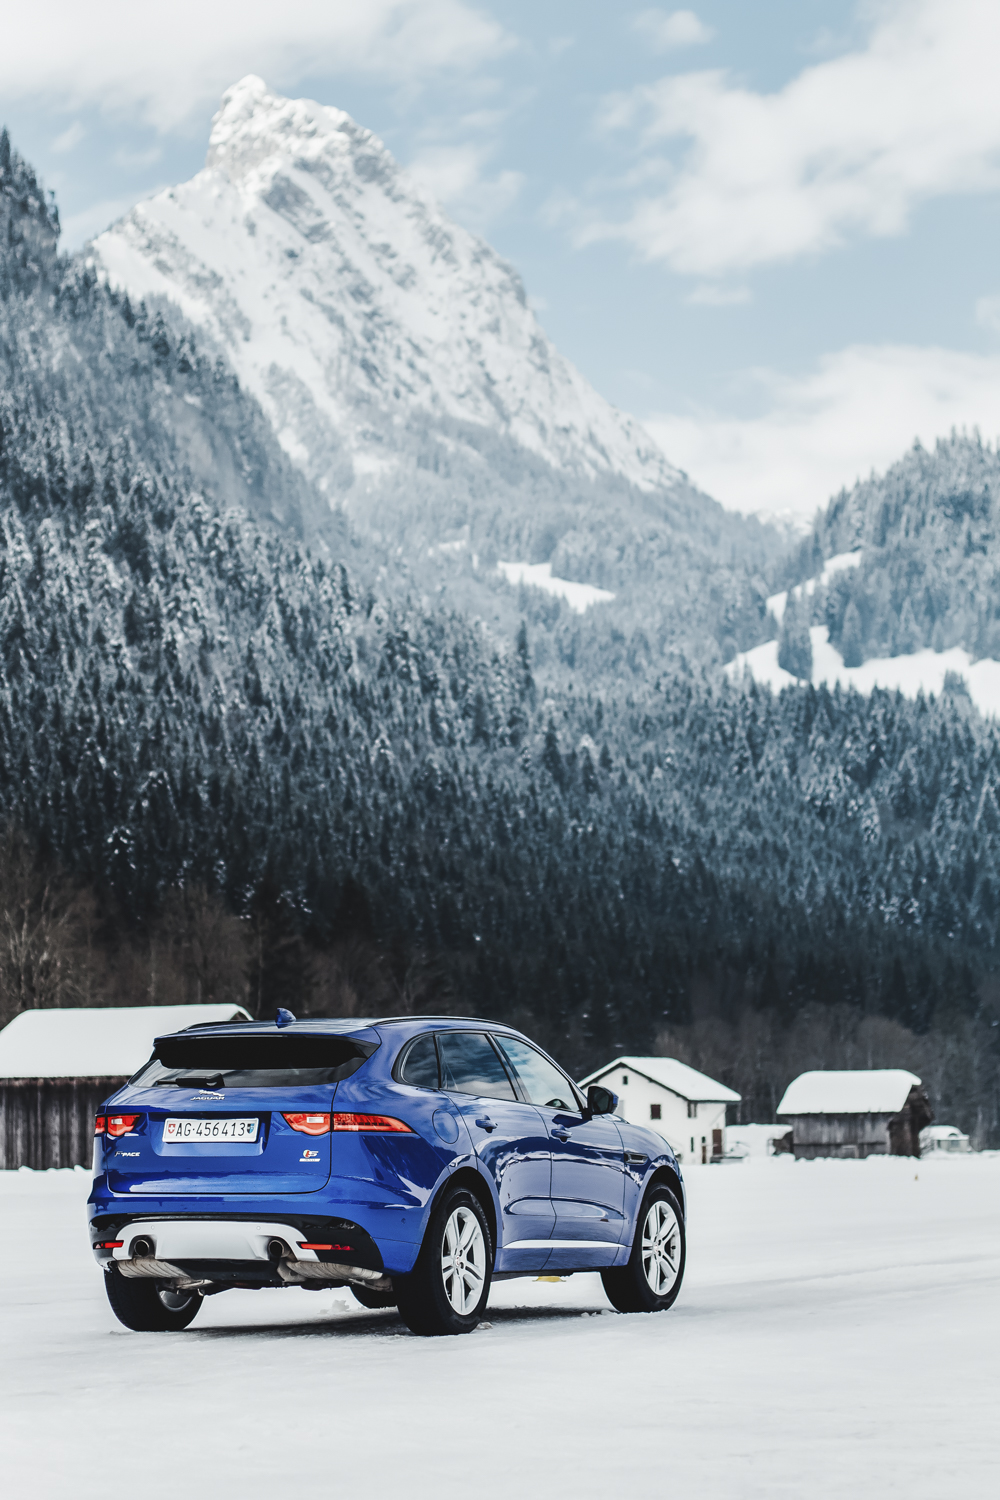 Die Jaguar Land Rover Ice Driving Experience in Gstaad 13